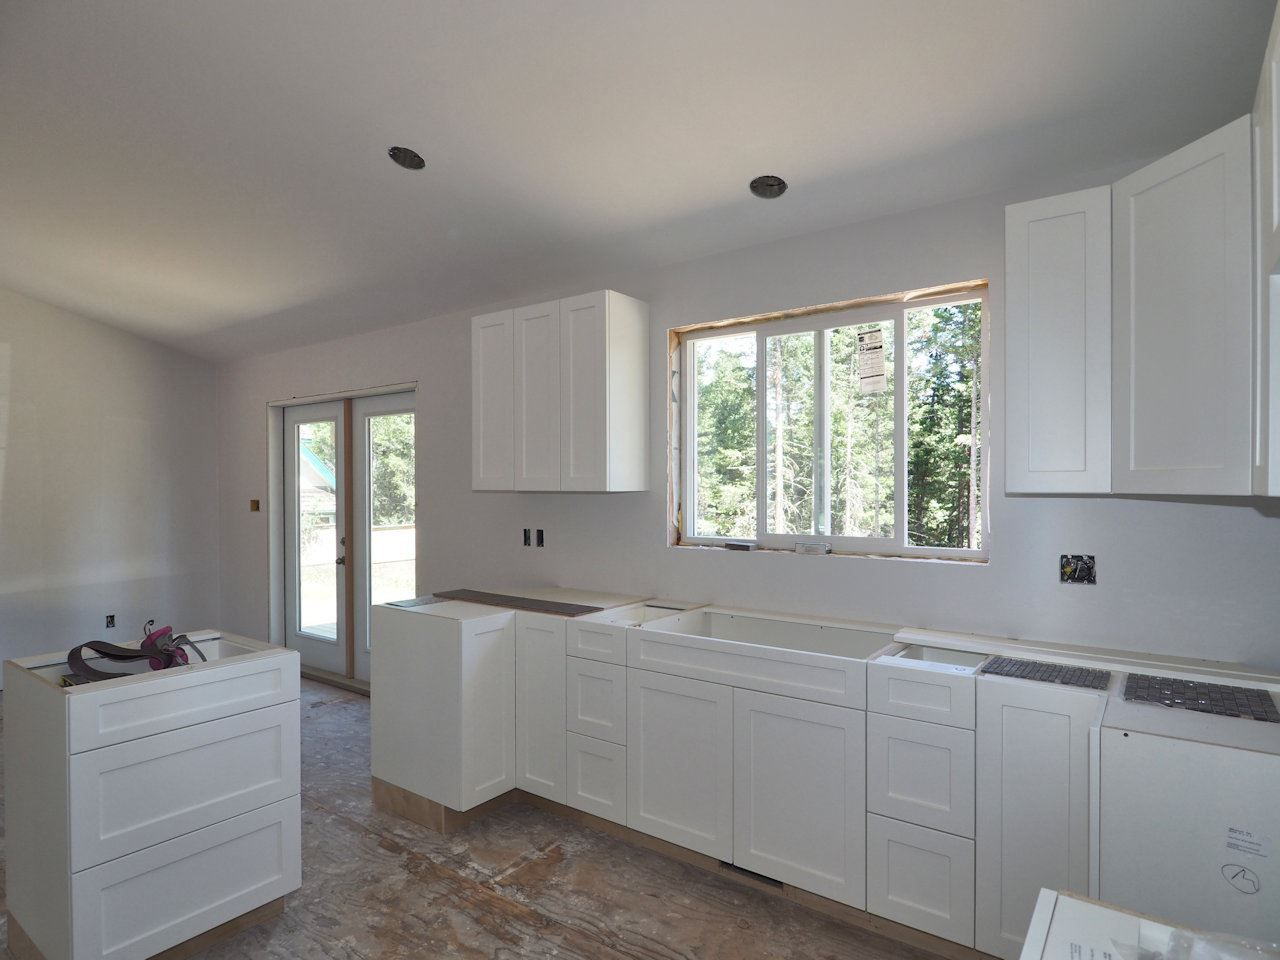 Photo 4: Photos: 5007 KYLLO Road in 108 Mile Ranch: 108 Ranch House for sale (100 Mile House (Zone 10))  : MLS®# R2464127